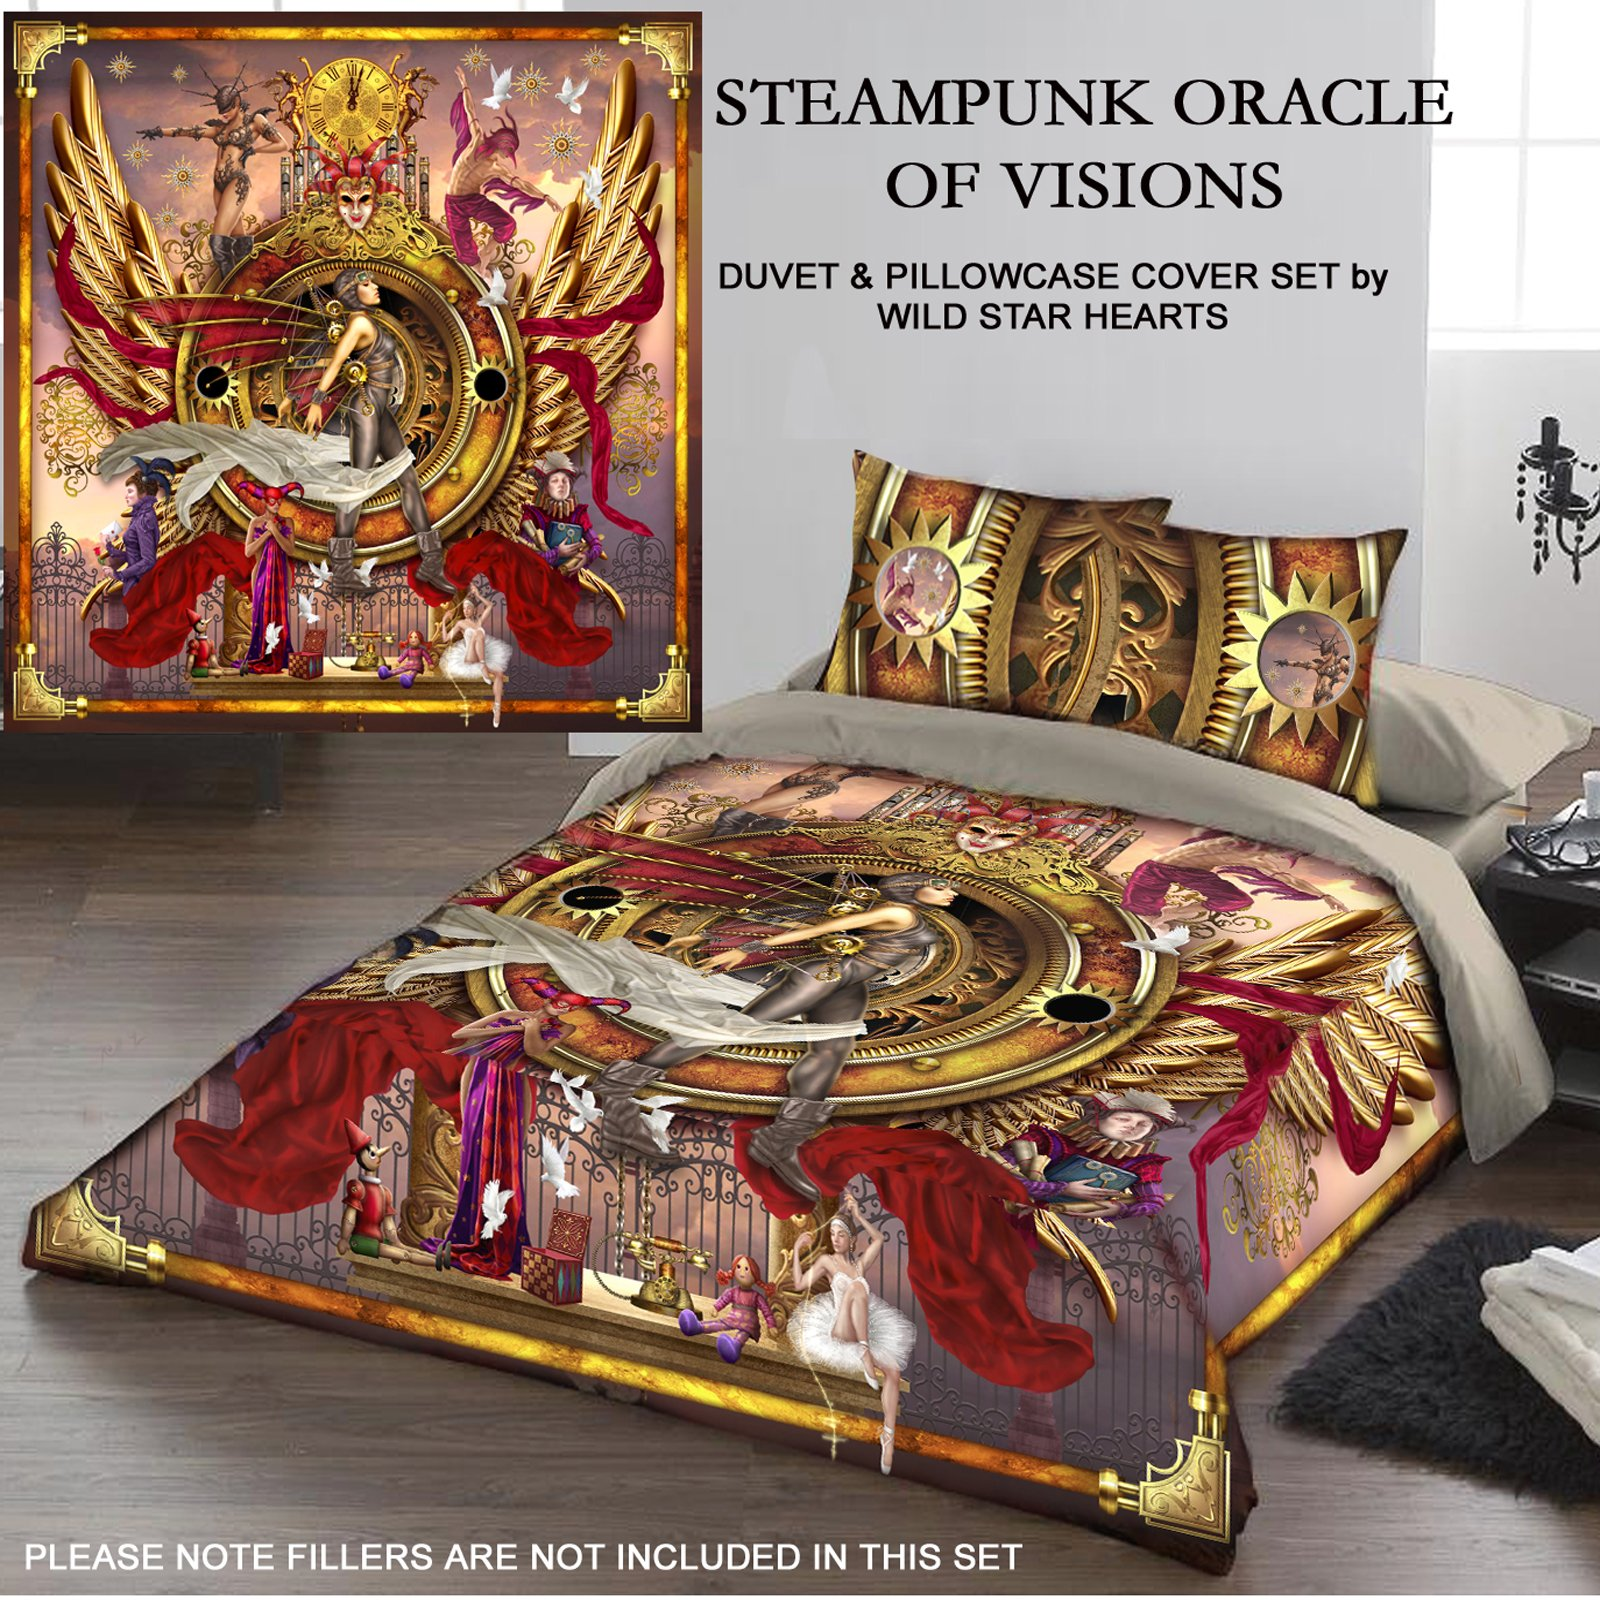 STEAMPUNK ORACLE OF VISION Duvet & Pillows Case Covers Set for Queensize Bed by Wild Star Home